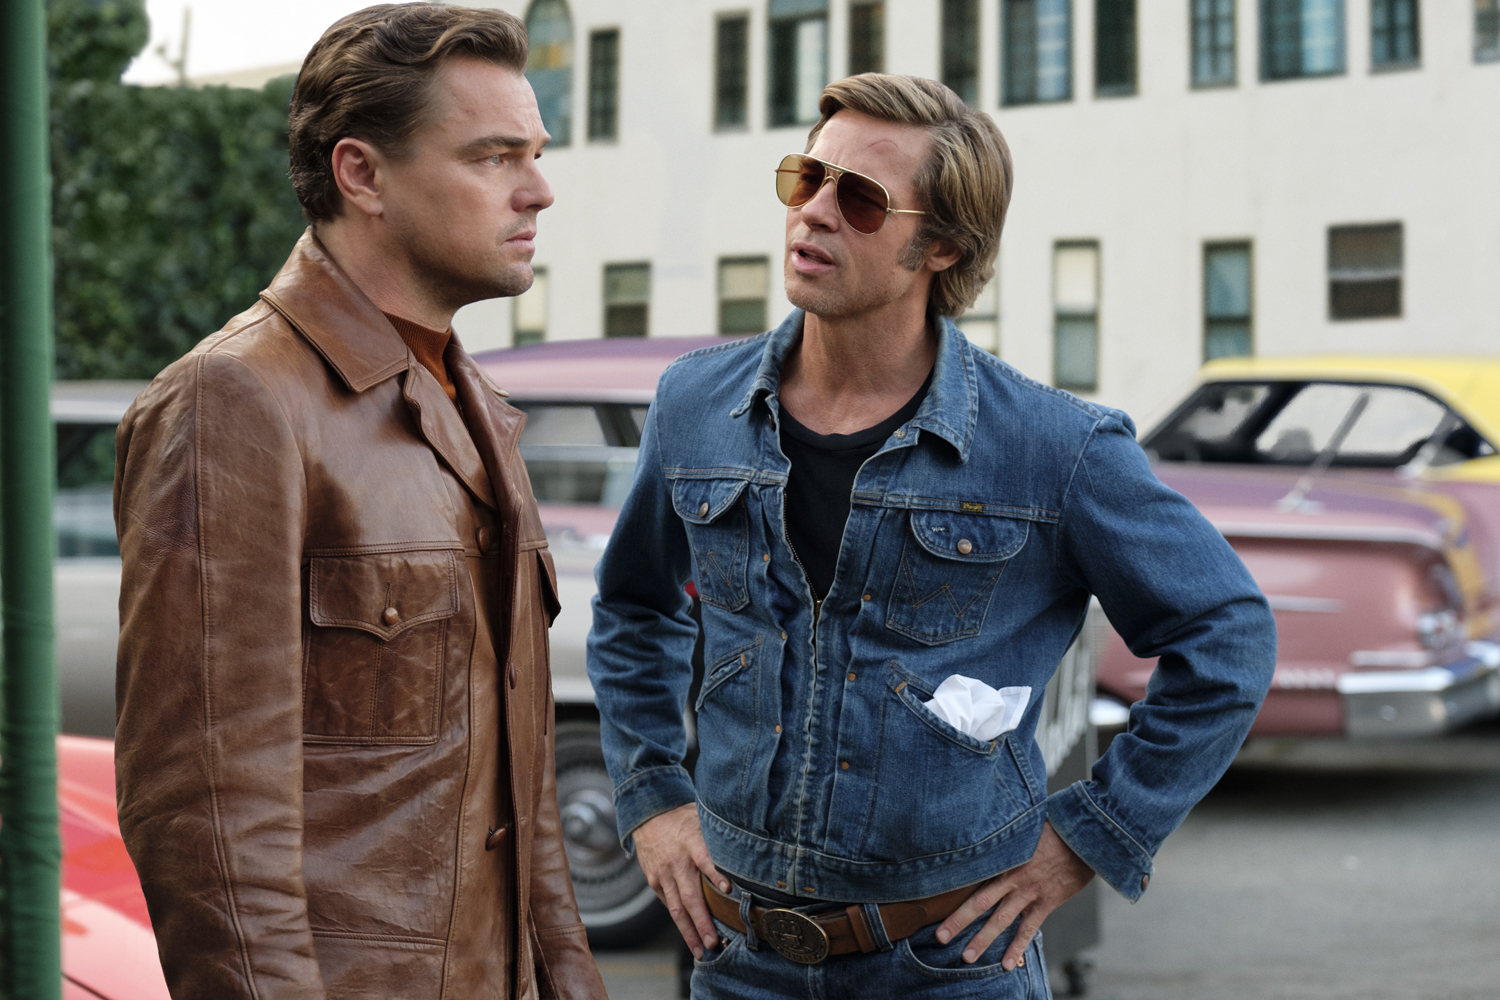 brad-pitt-leonardo-dicaprio-once-upon-a-time-in-hollywood.jpg